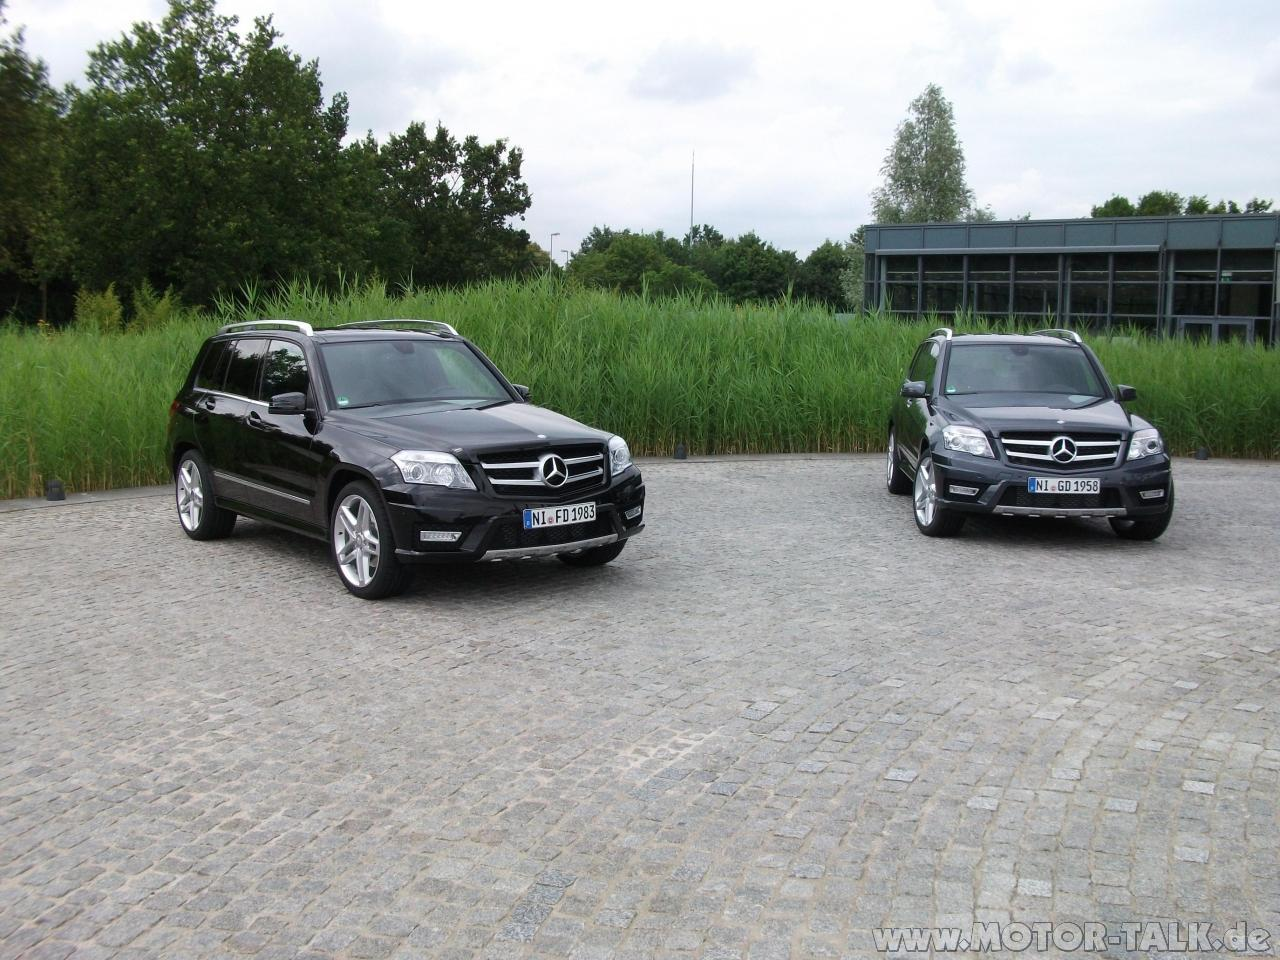 wie zwillinge mein neuer glk 350 cdi 4matic mit amg paket mercedes glk 203465848. Black Bedroom Furniture Sets. Home Design Ideas